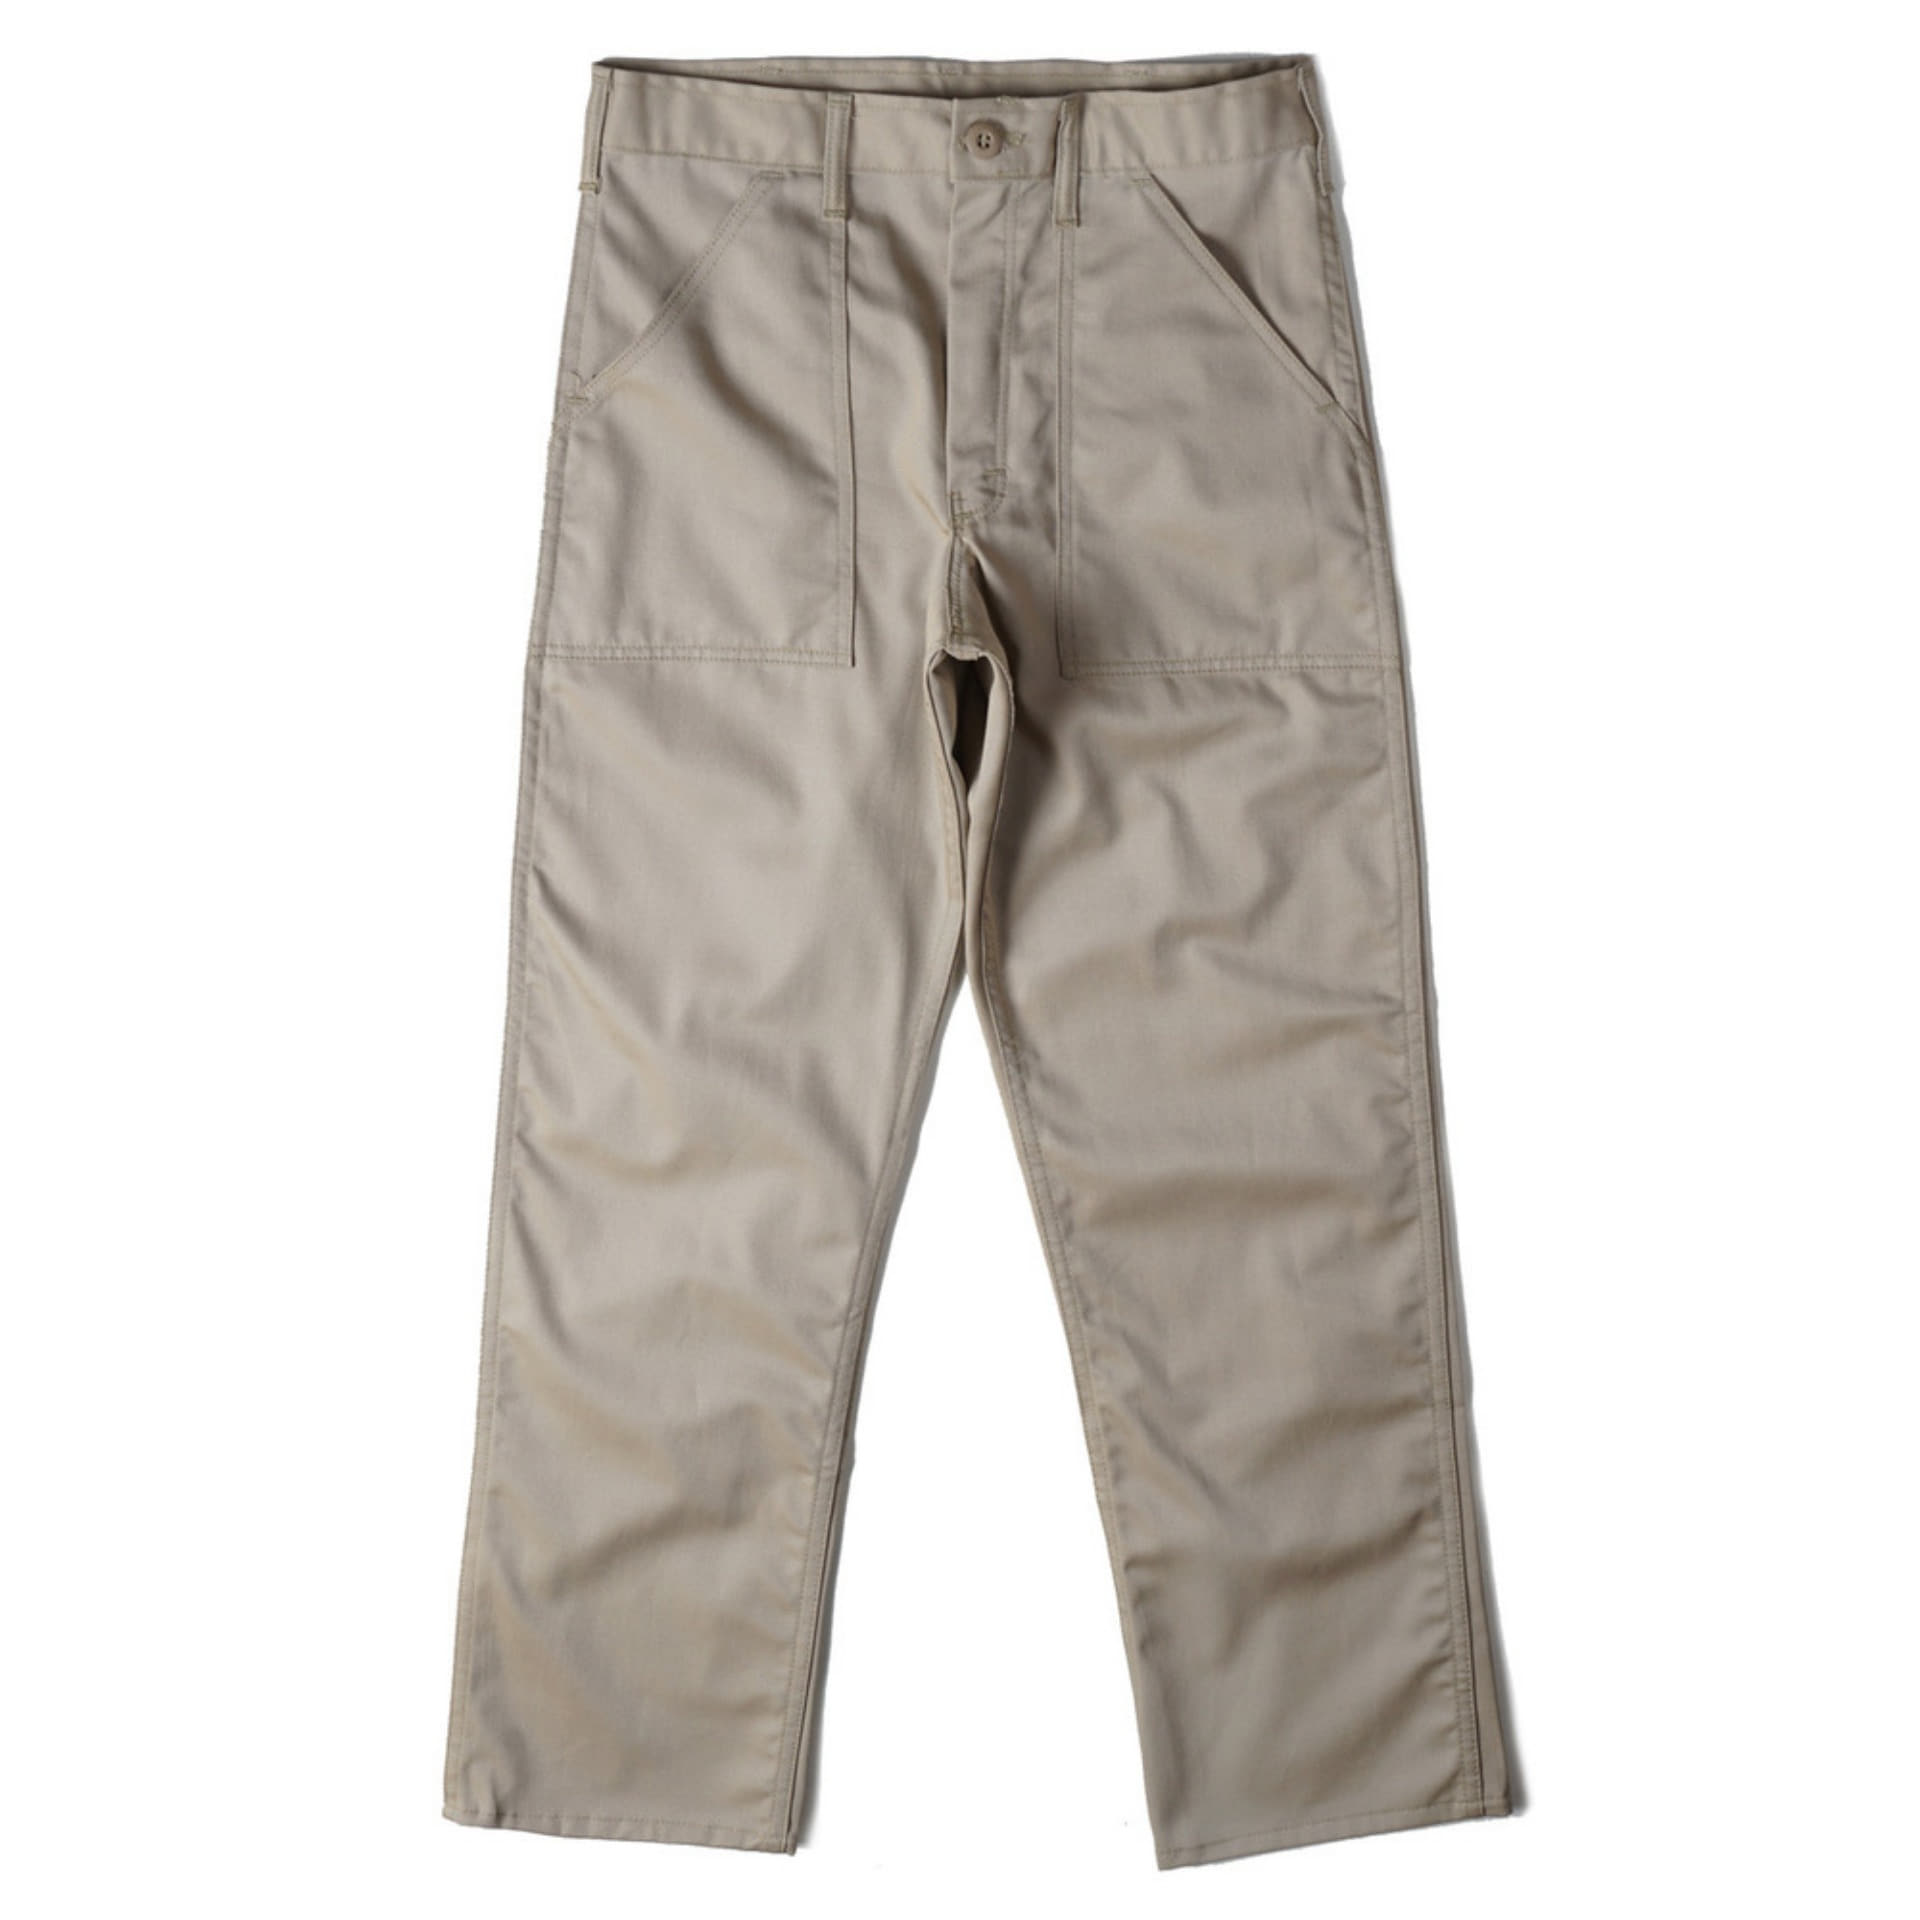 4 Pocket Fatigue Pants 1106P Khaki Twill(KHAKI)